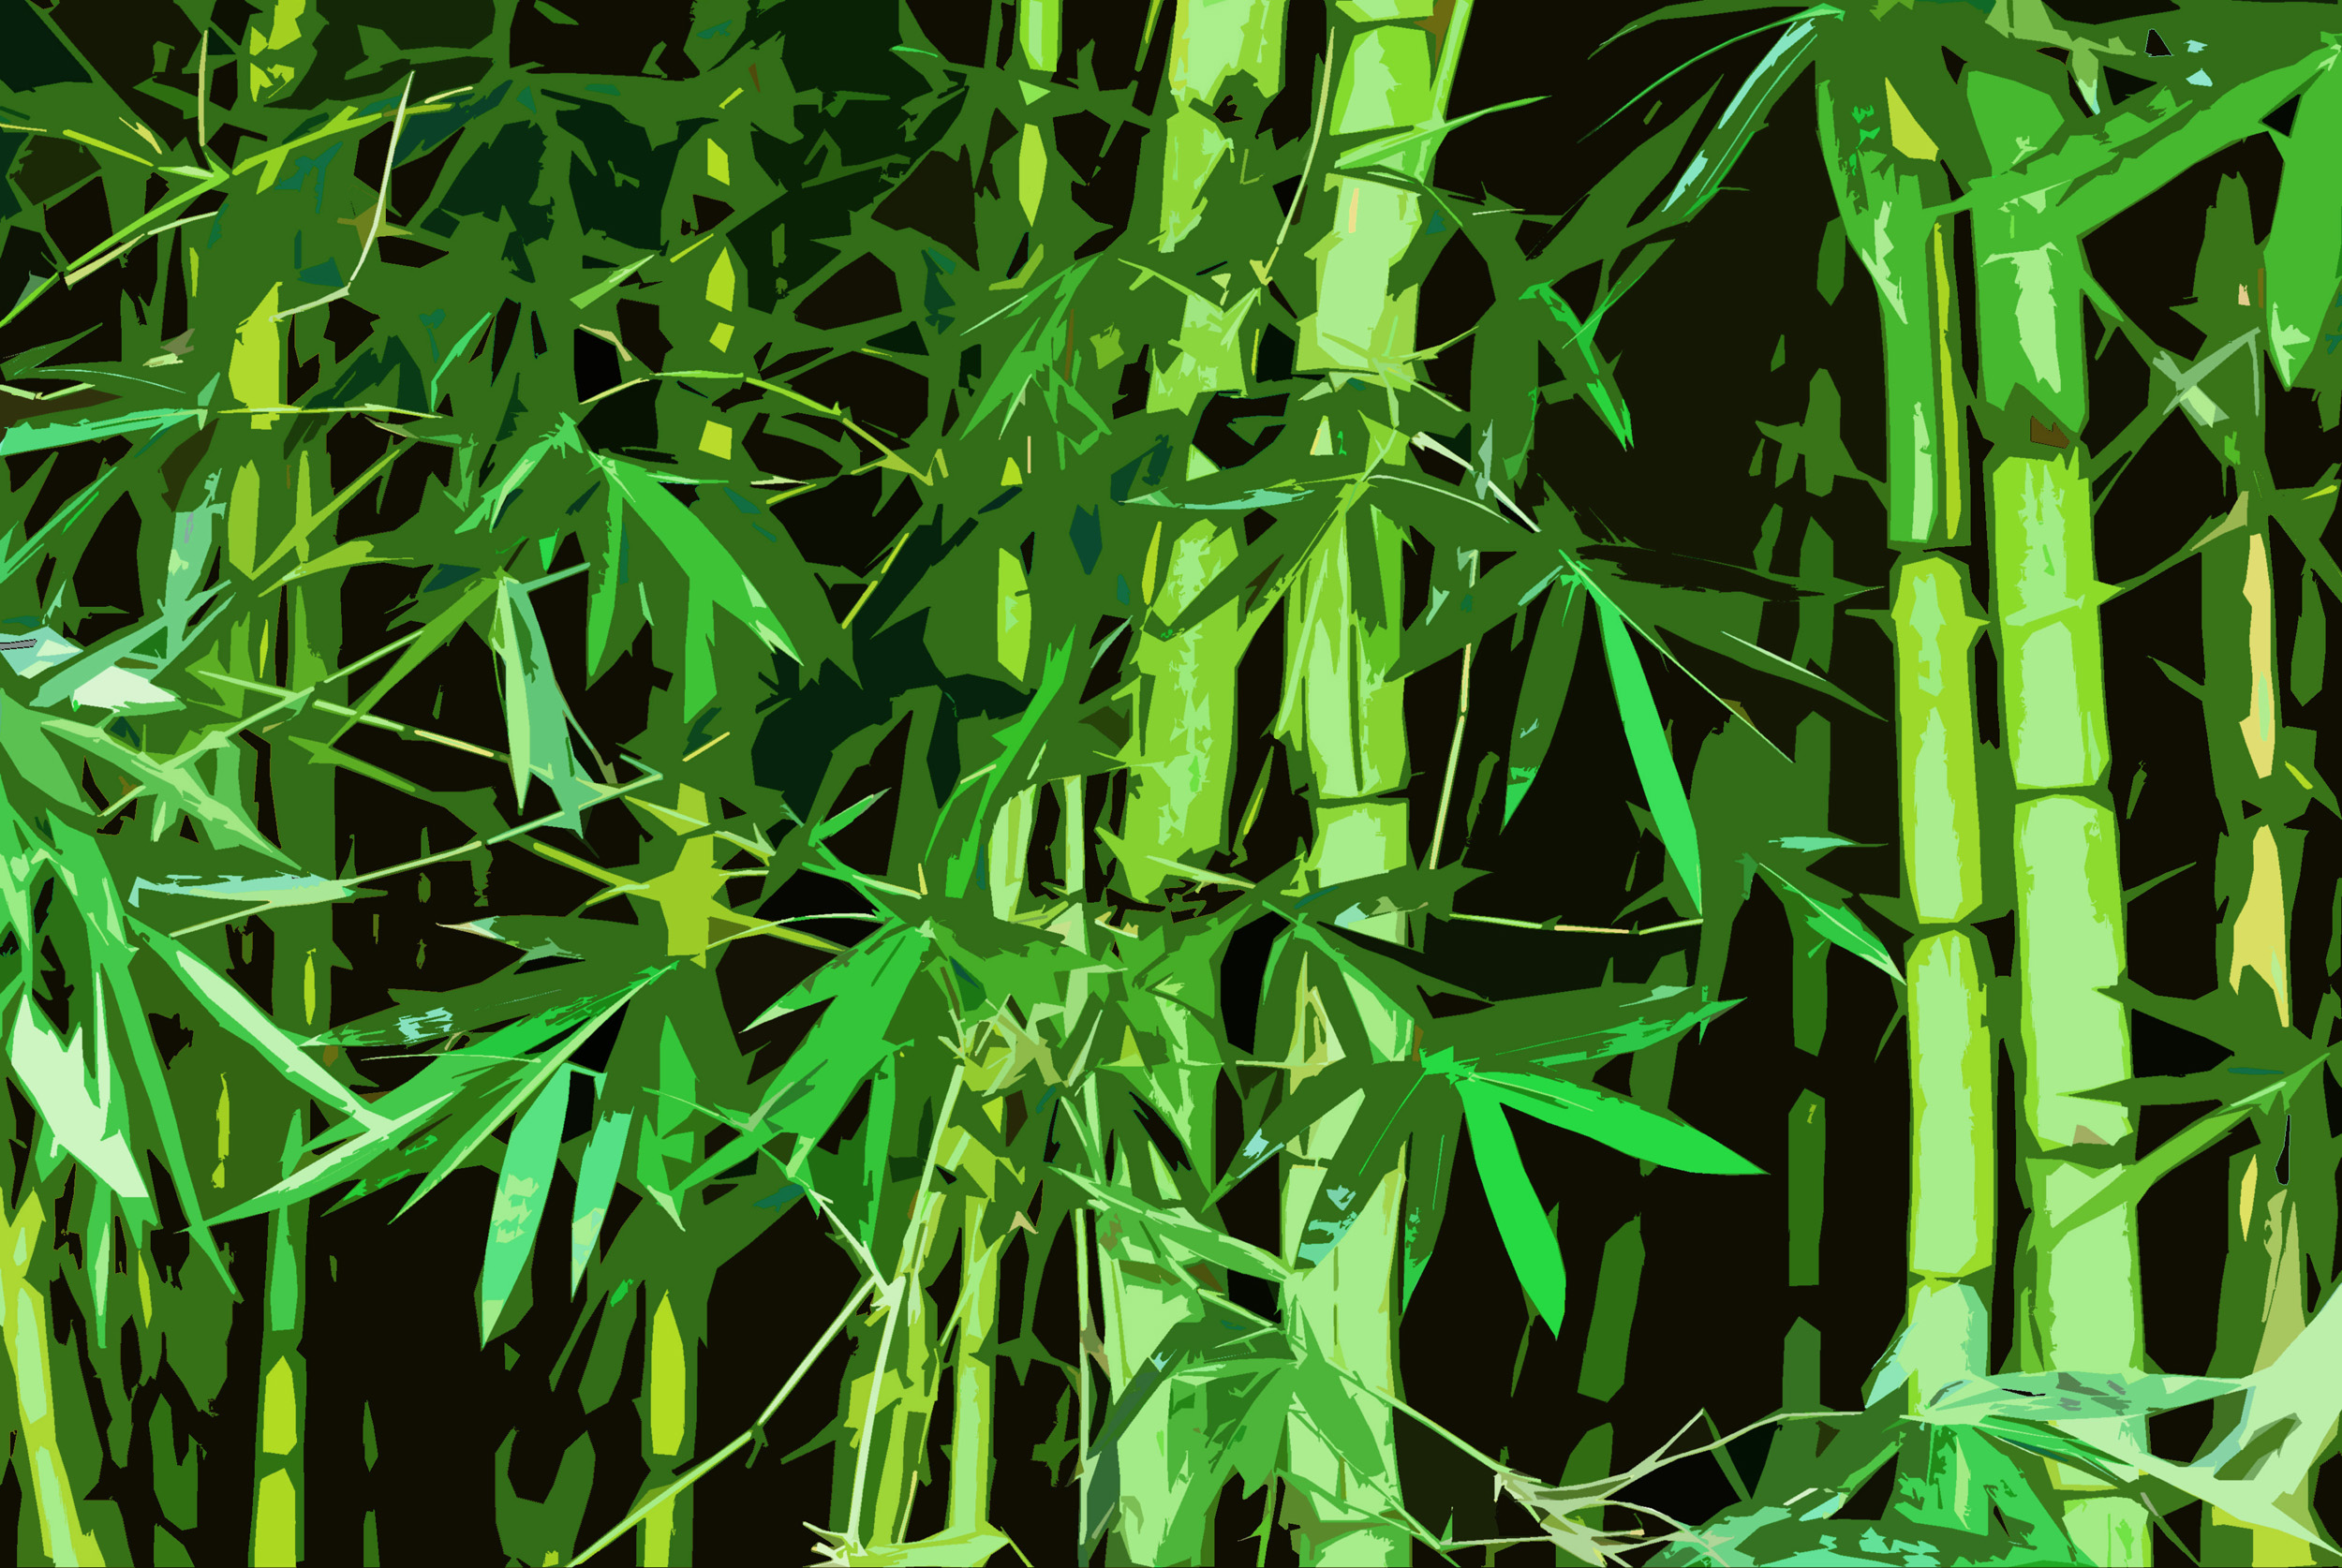 Wallpaper Black Green Free Stock Photo 3003 Graphic Bamboo Freeimageslive